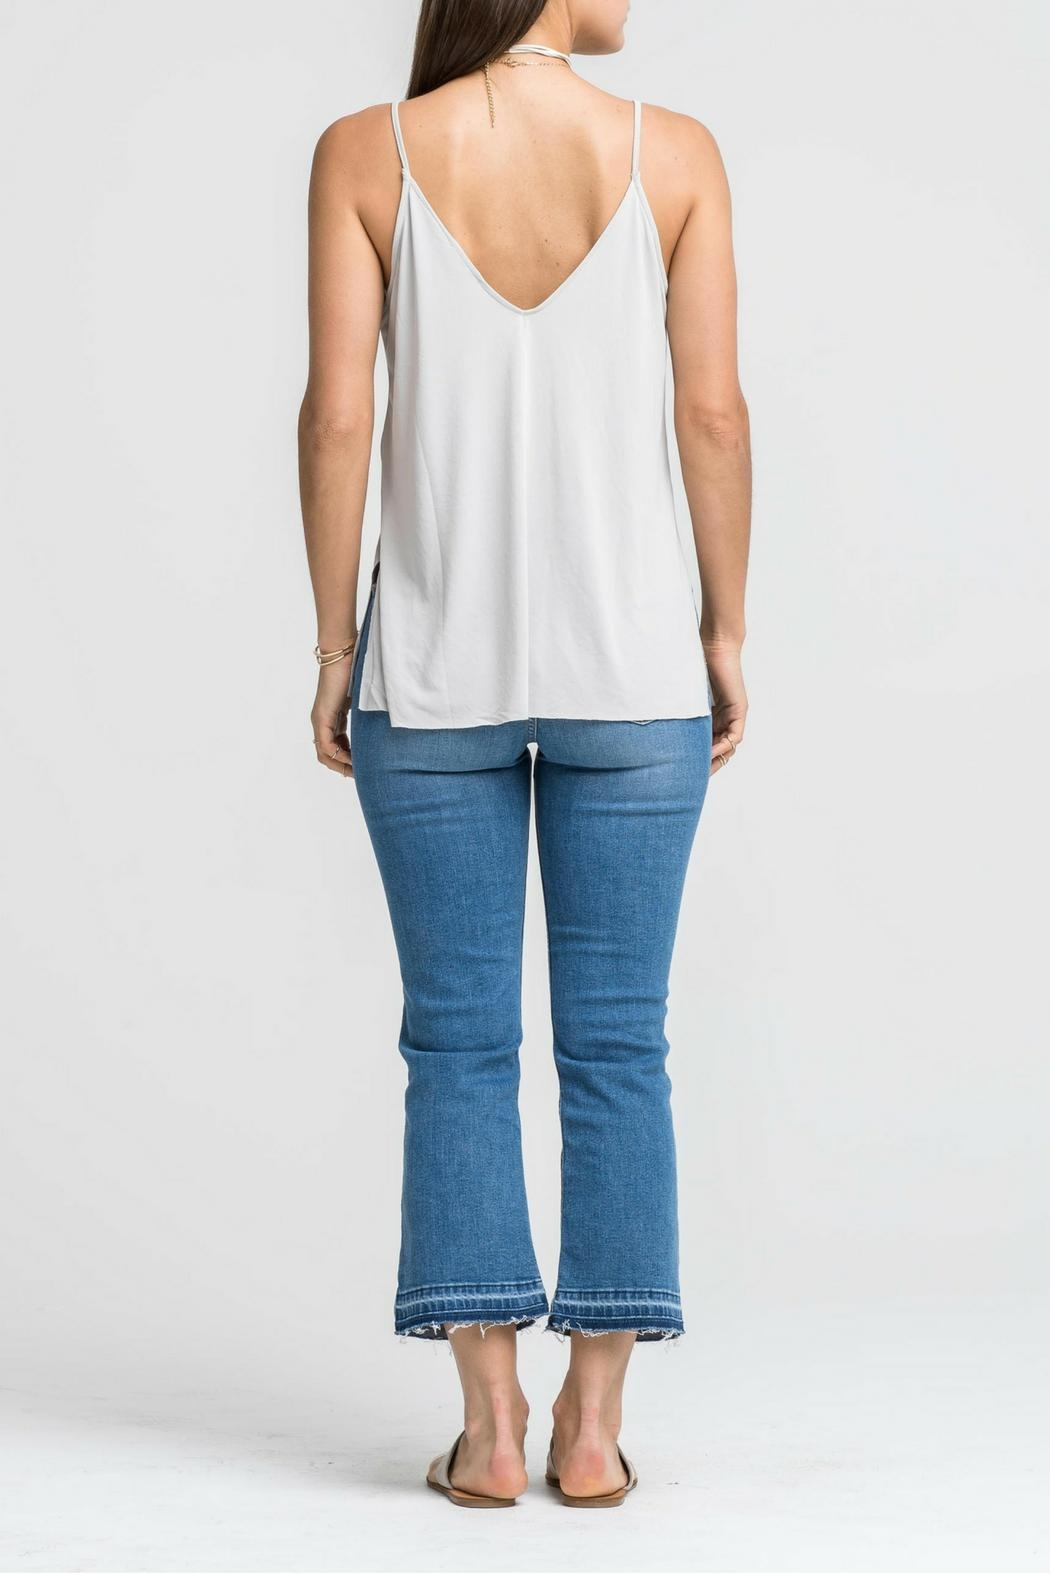 Lush Gray Cami Top - Front Full Image